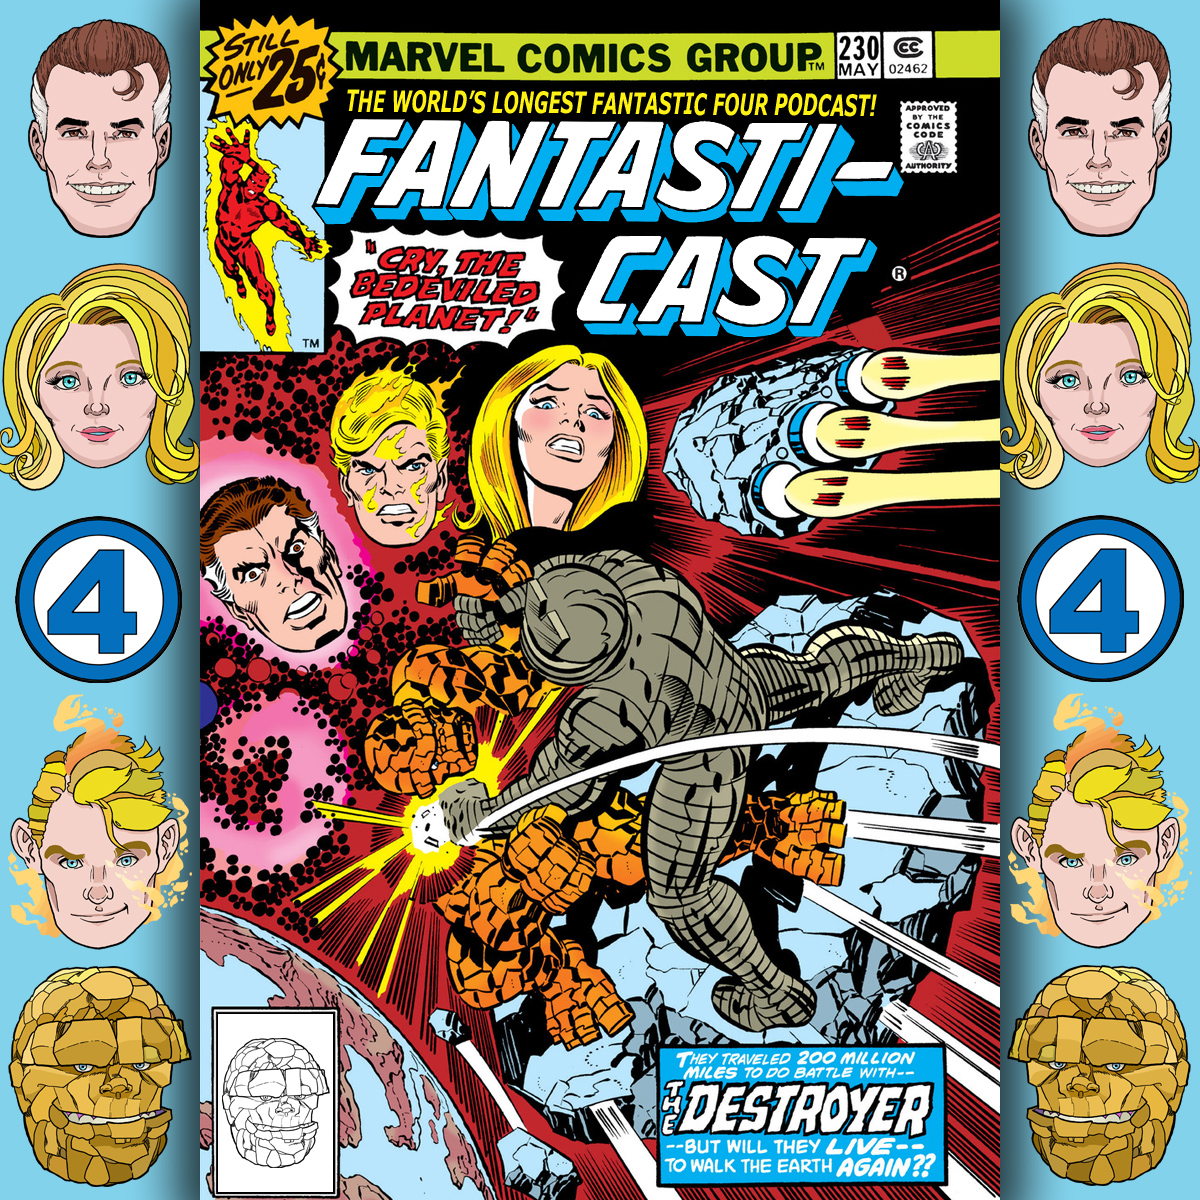 The Fantasticast Episode 230